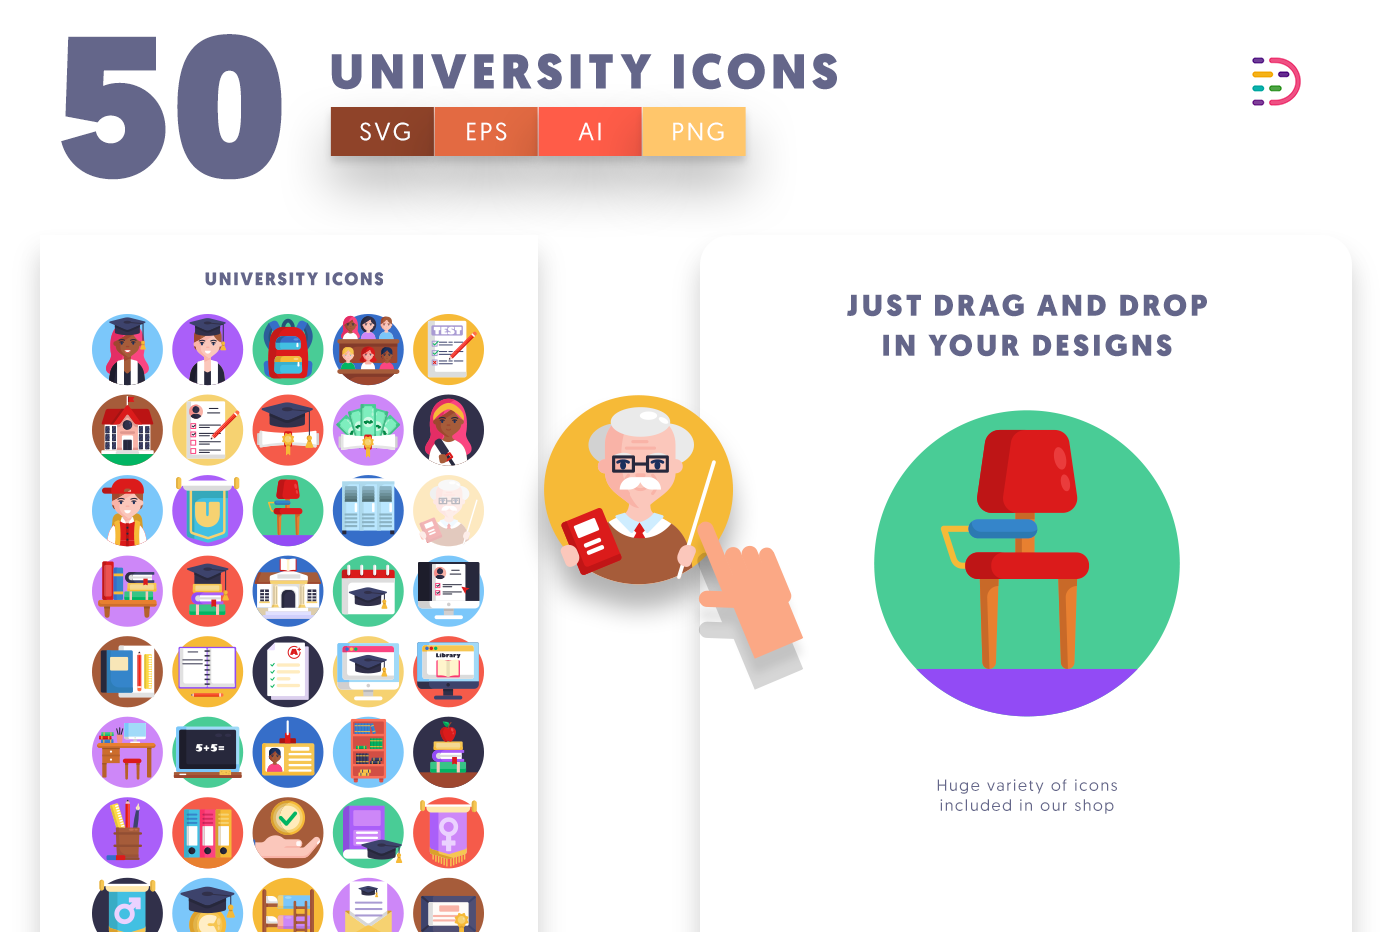 Drag and drop vector 50 University Icons